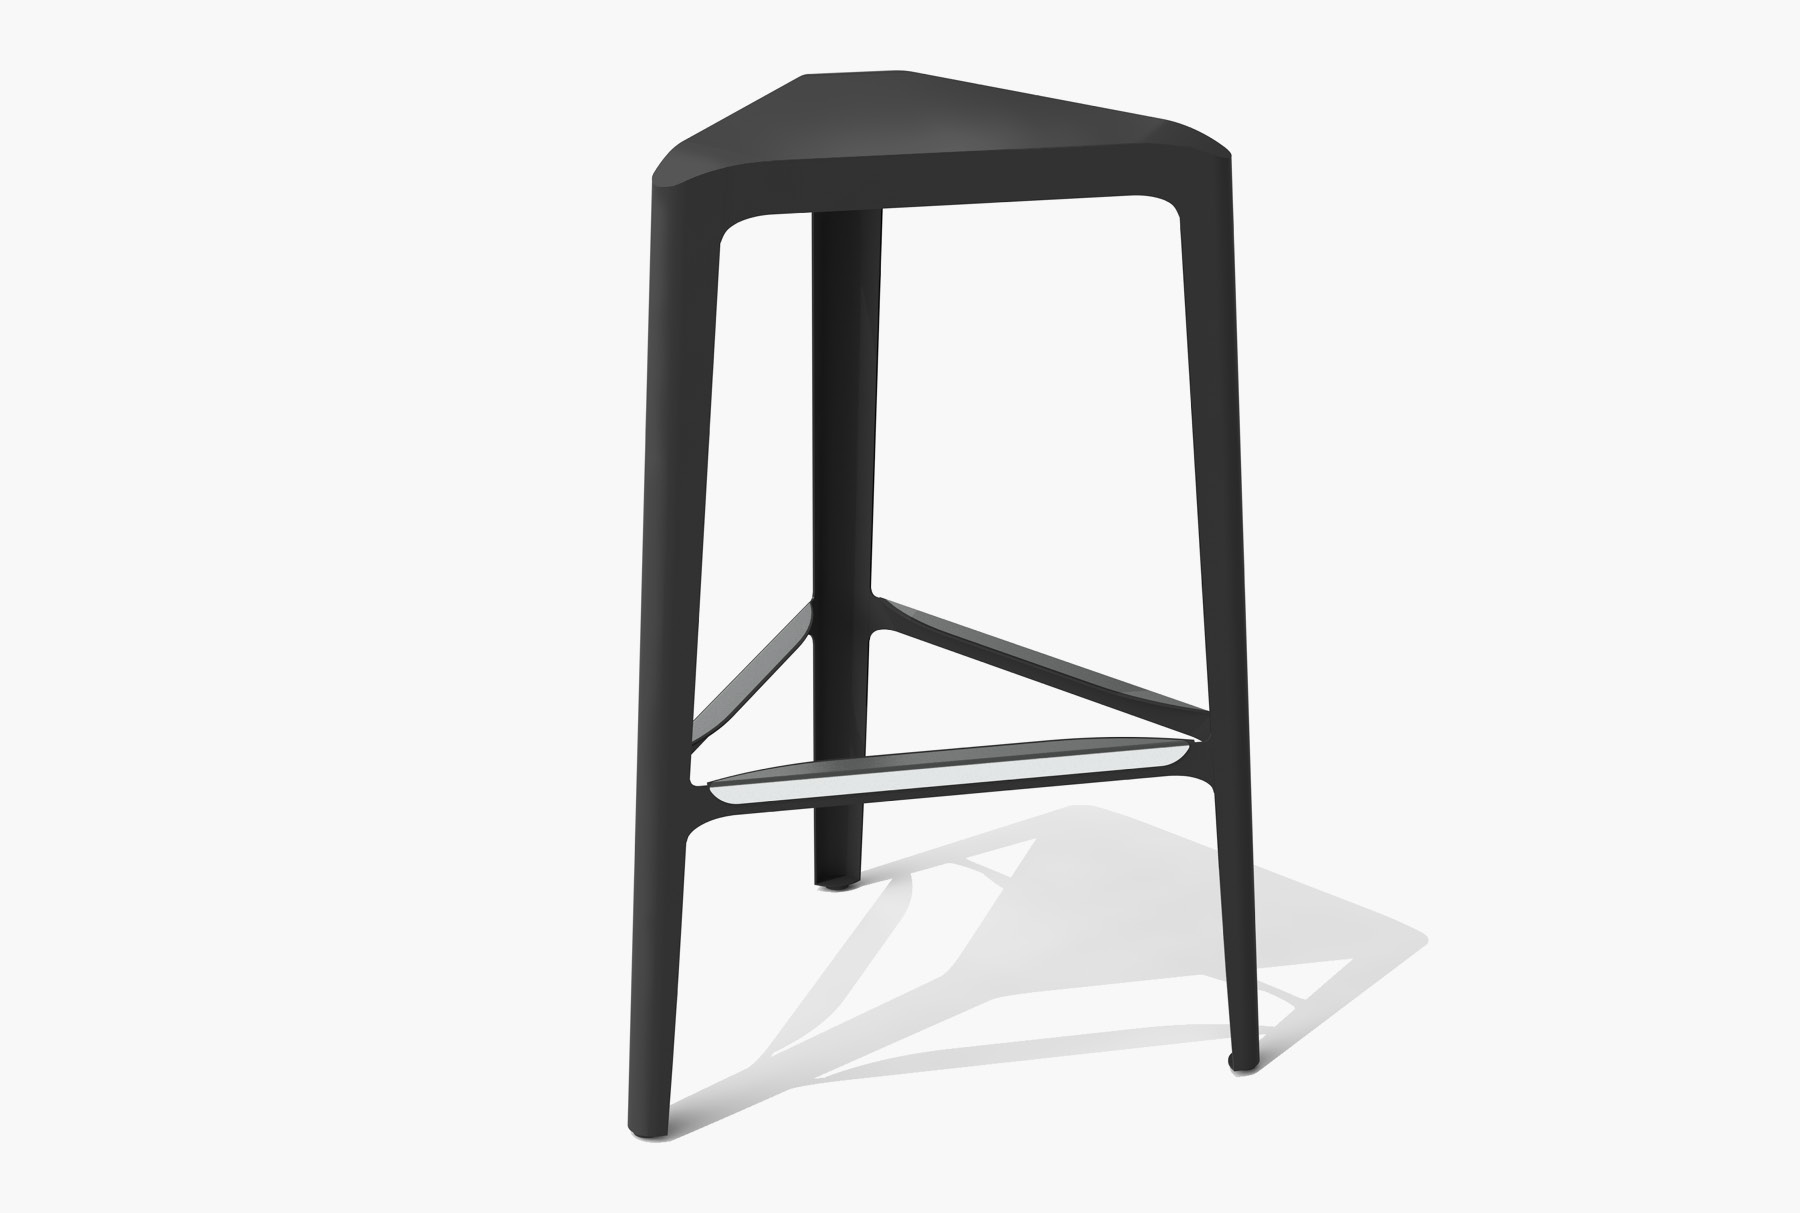 Arktura Clic Bar Stool in Jet Black